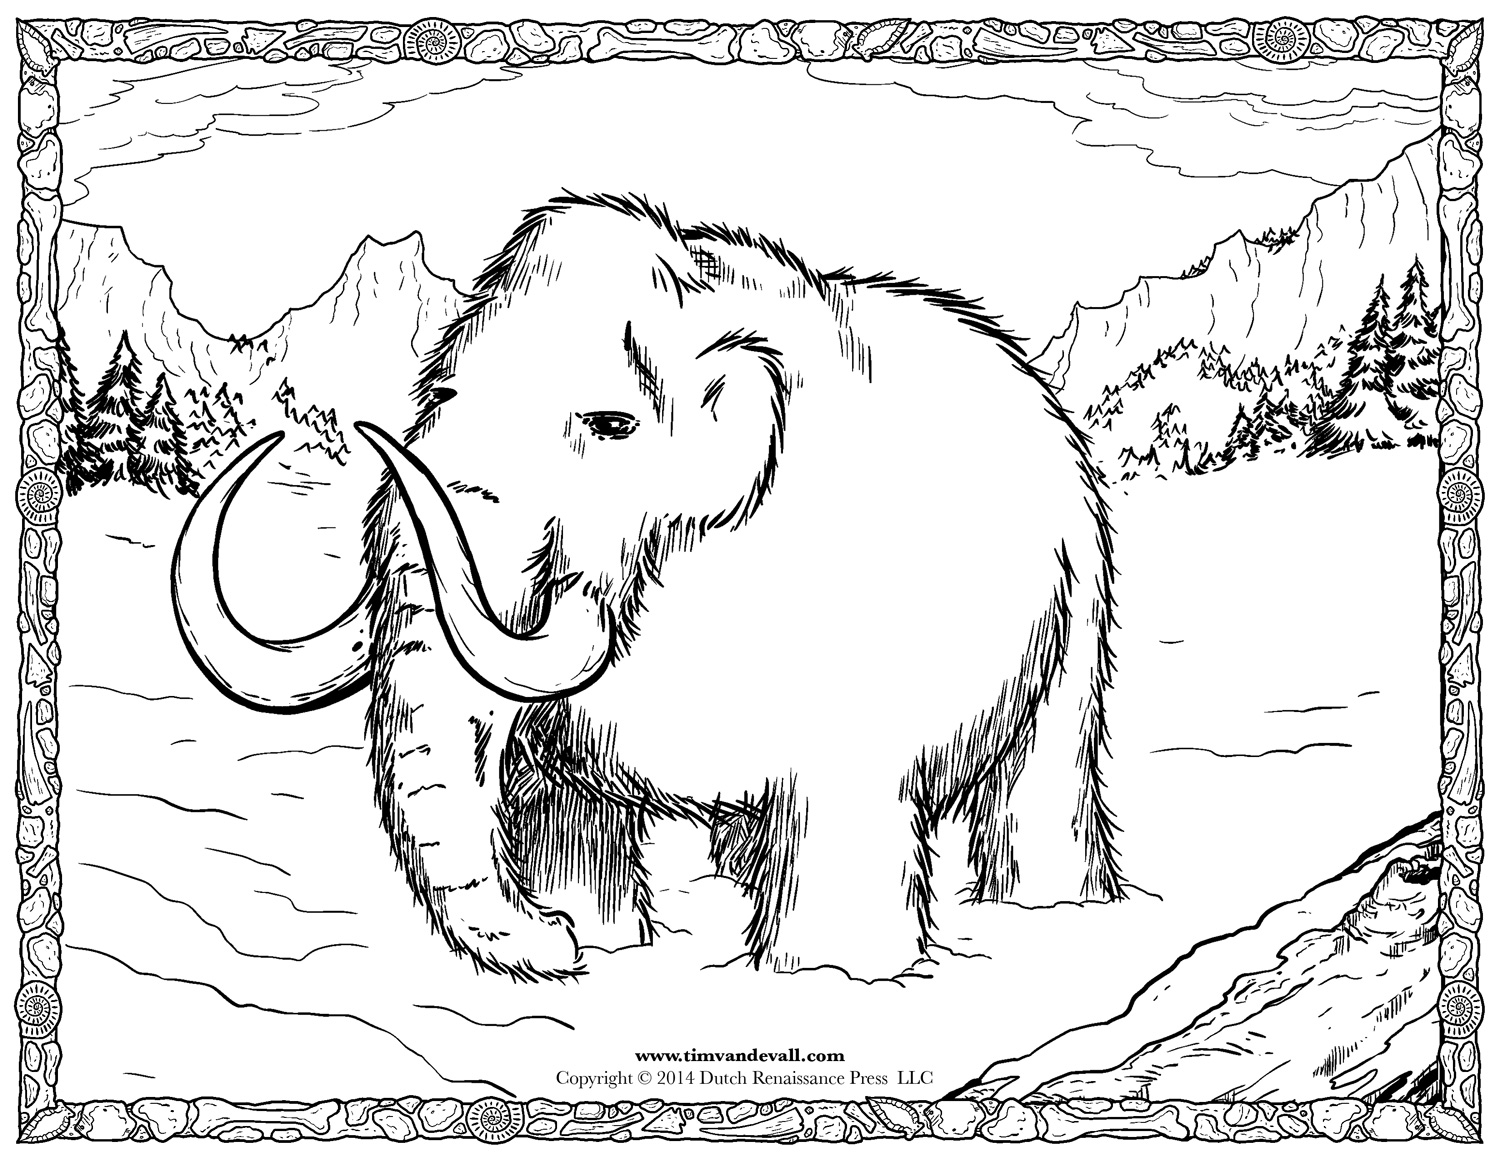 the woolly mammoth essay School essay primary school level  woolly mammoth  elina wooly mammothdocx uploaded by melody tanase.